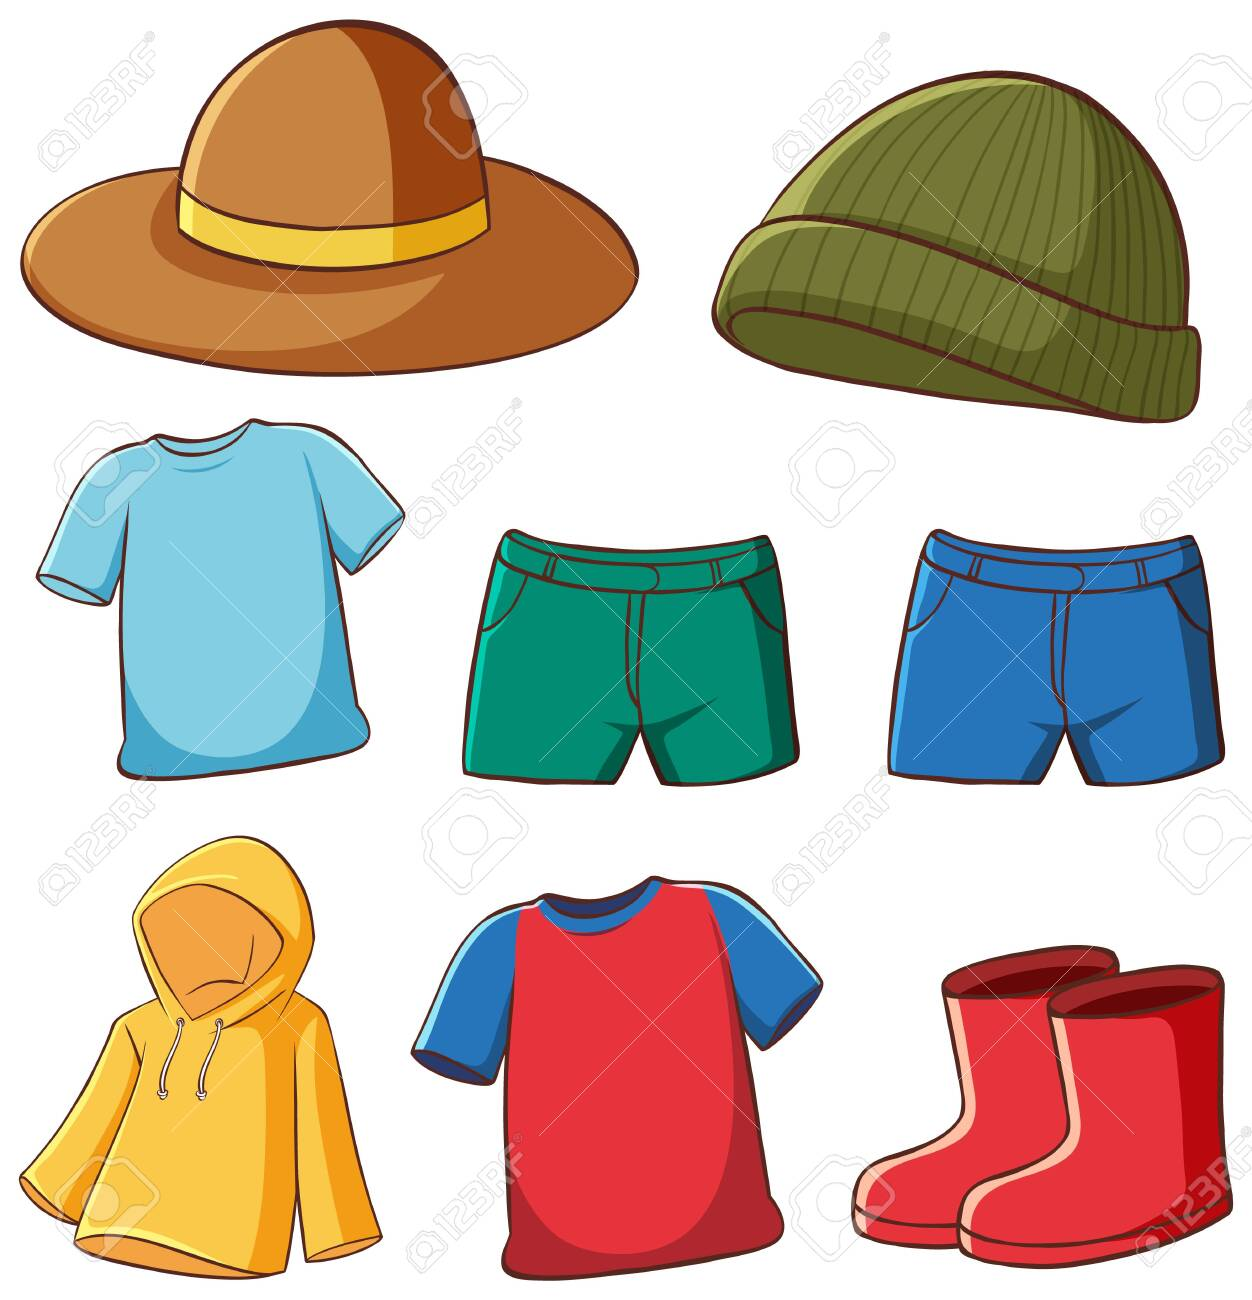 Set of isolated clothes illustration - 133193684